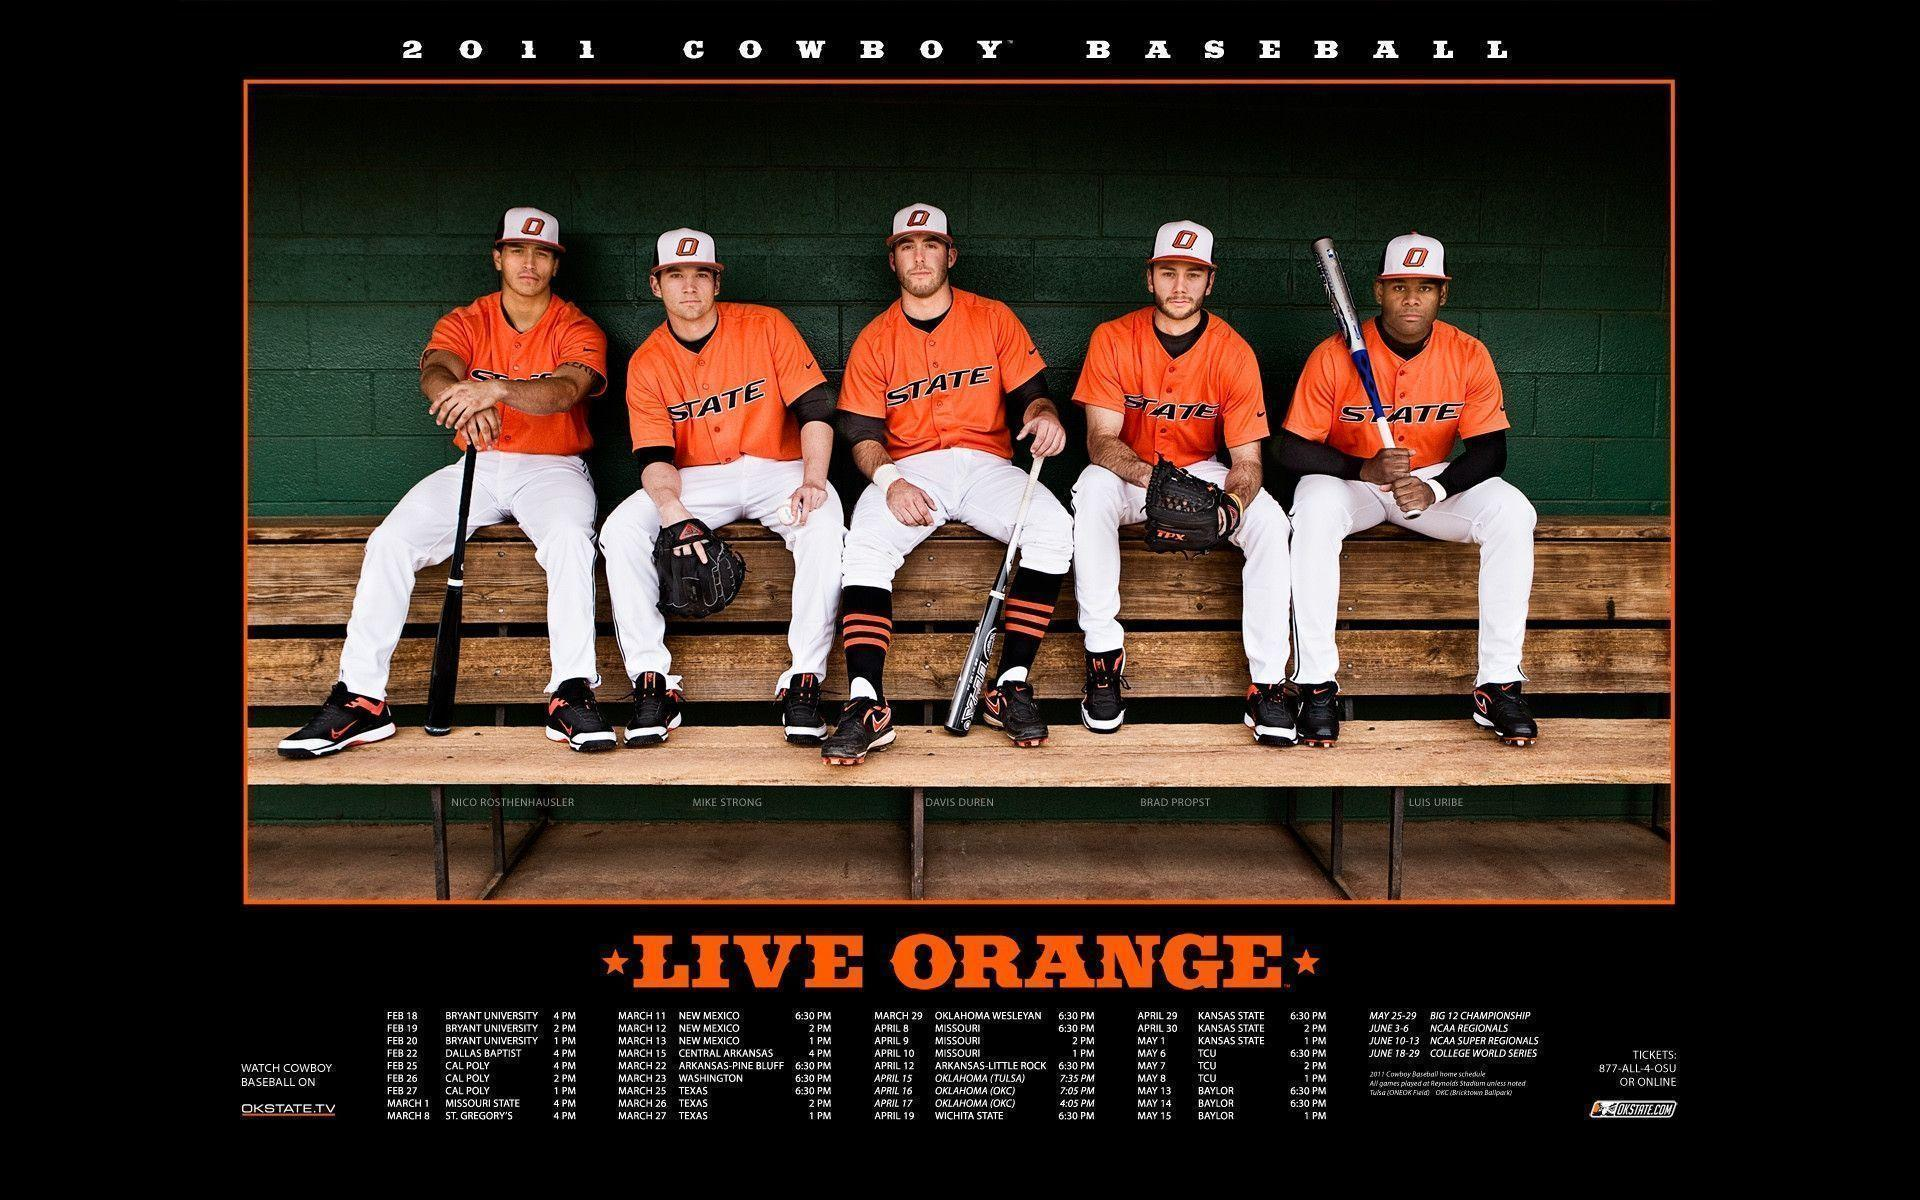 Oklahoma State baseball 2011 schedule : Desktop and mobile